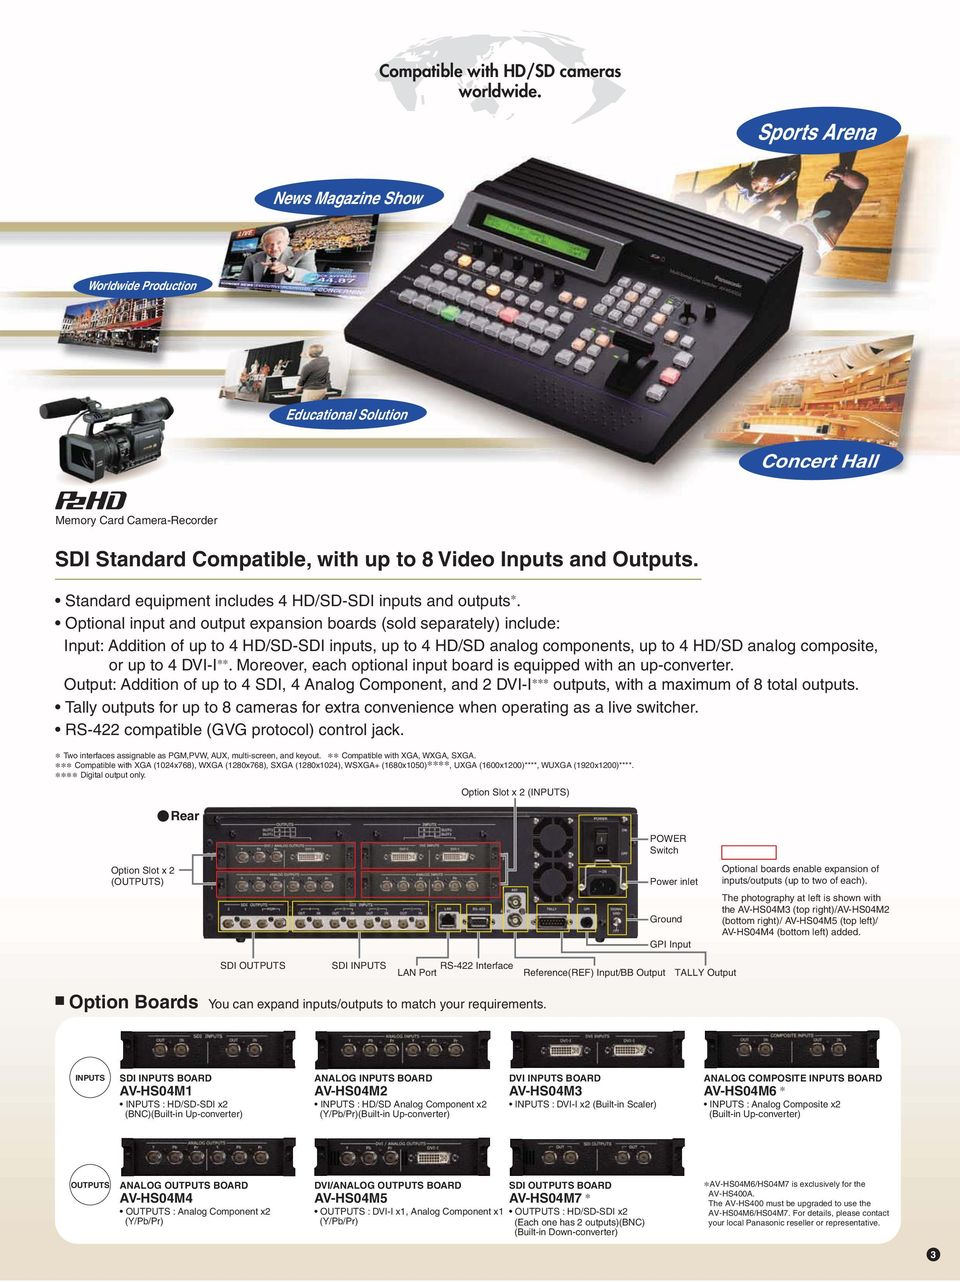 Compact, High-performance, Multi-format Live Switcher with